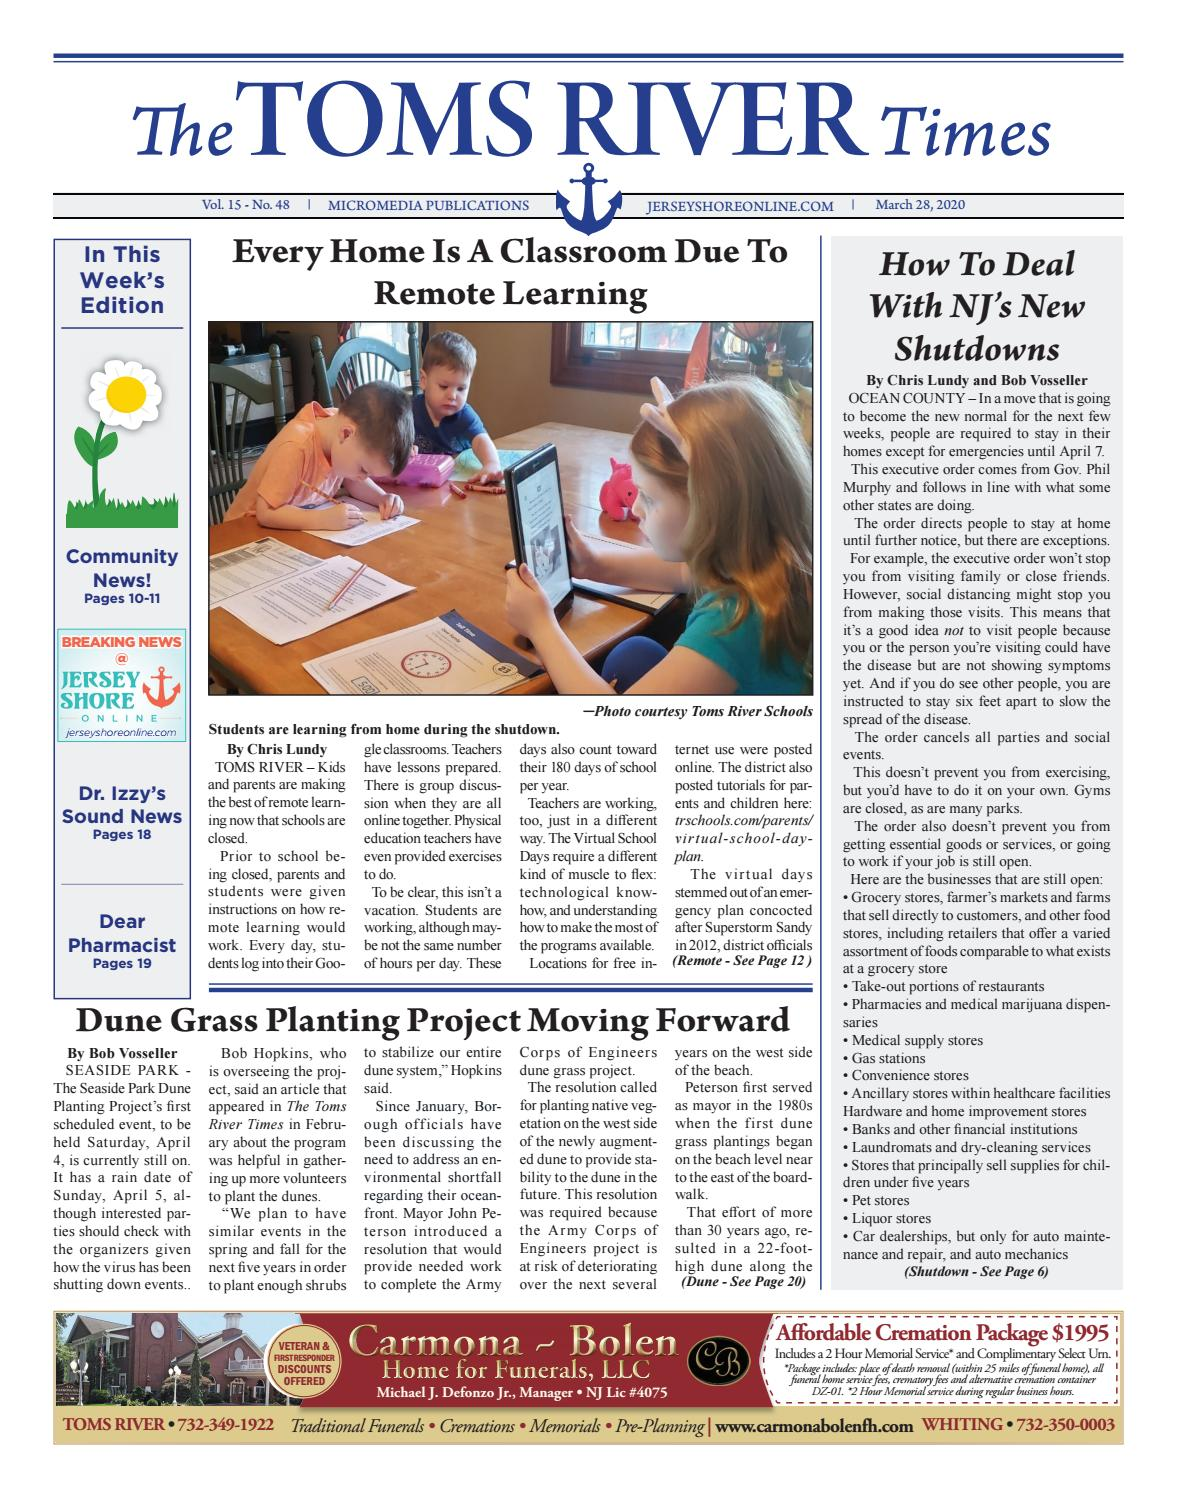 2020 03 28 The Toms River Times By Micromedia Publications Jersey Shore Online Issuu